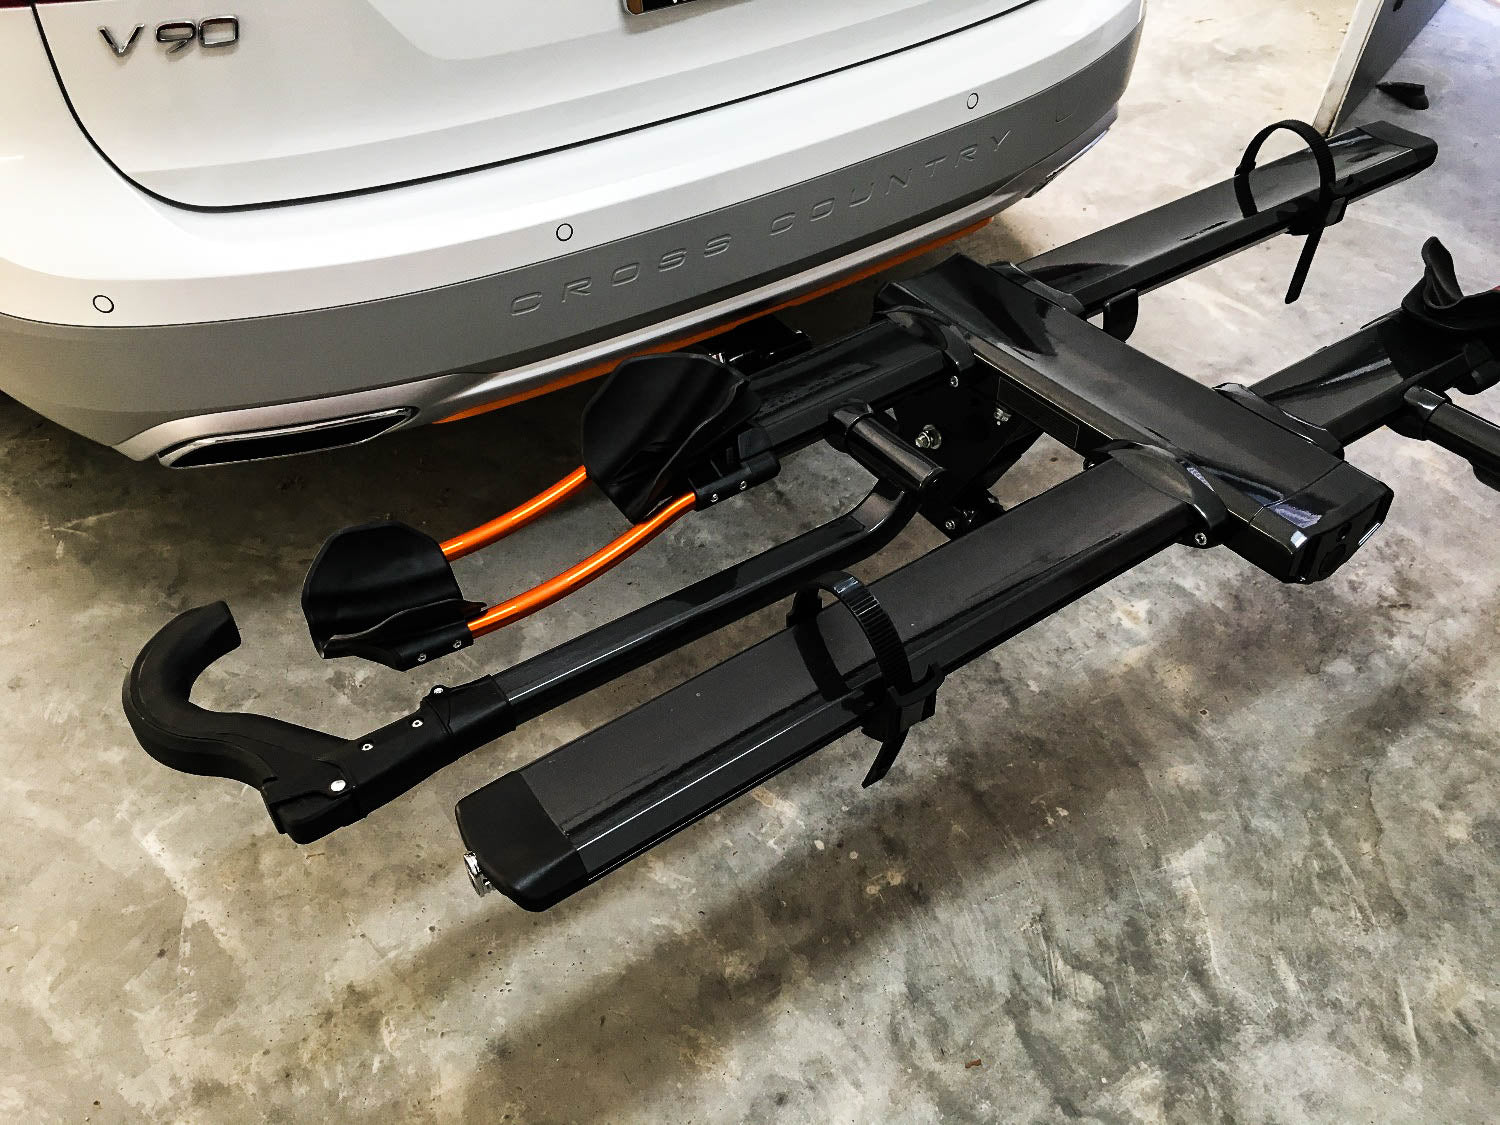 Volvo V90 Hitch Made To Be Hidden Tailored Trailer 350 Wiring Harness 2017 Present Also Fits Cross Country